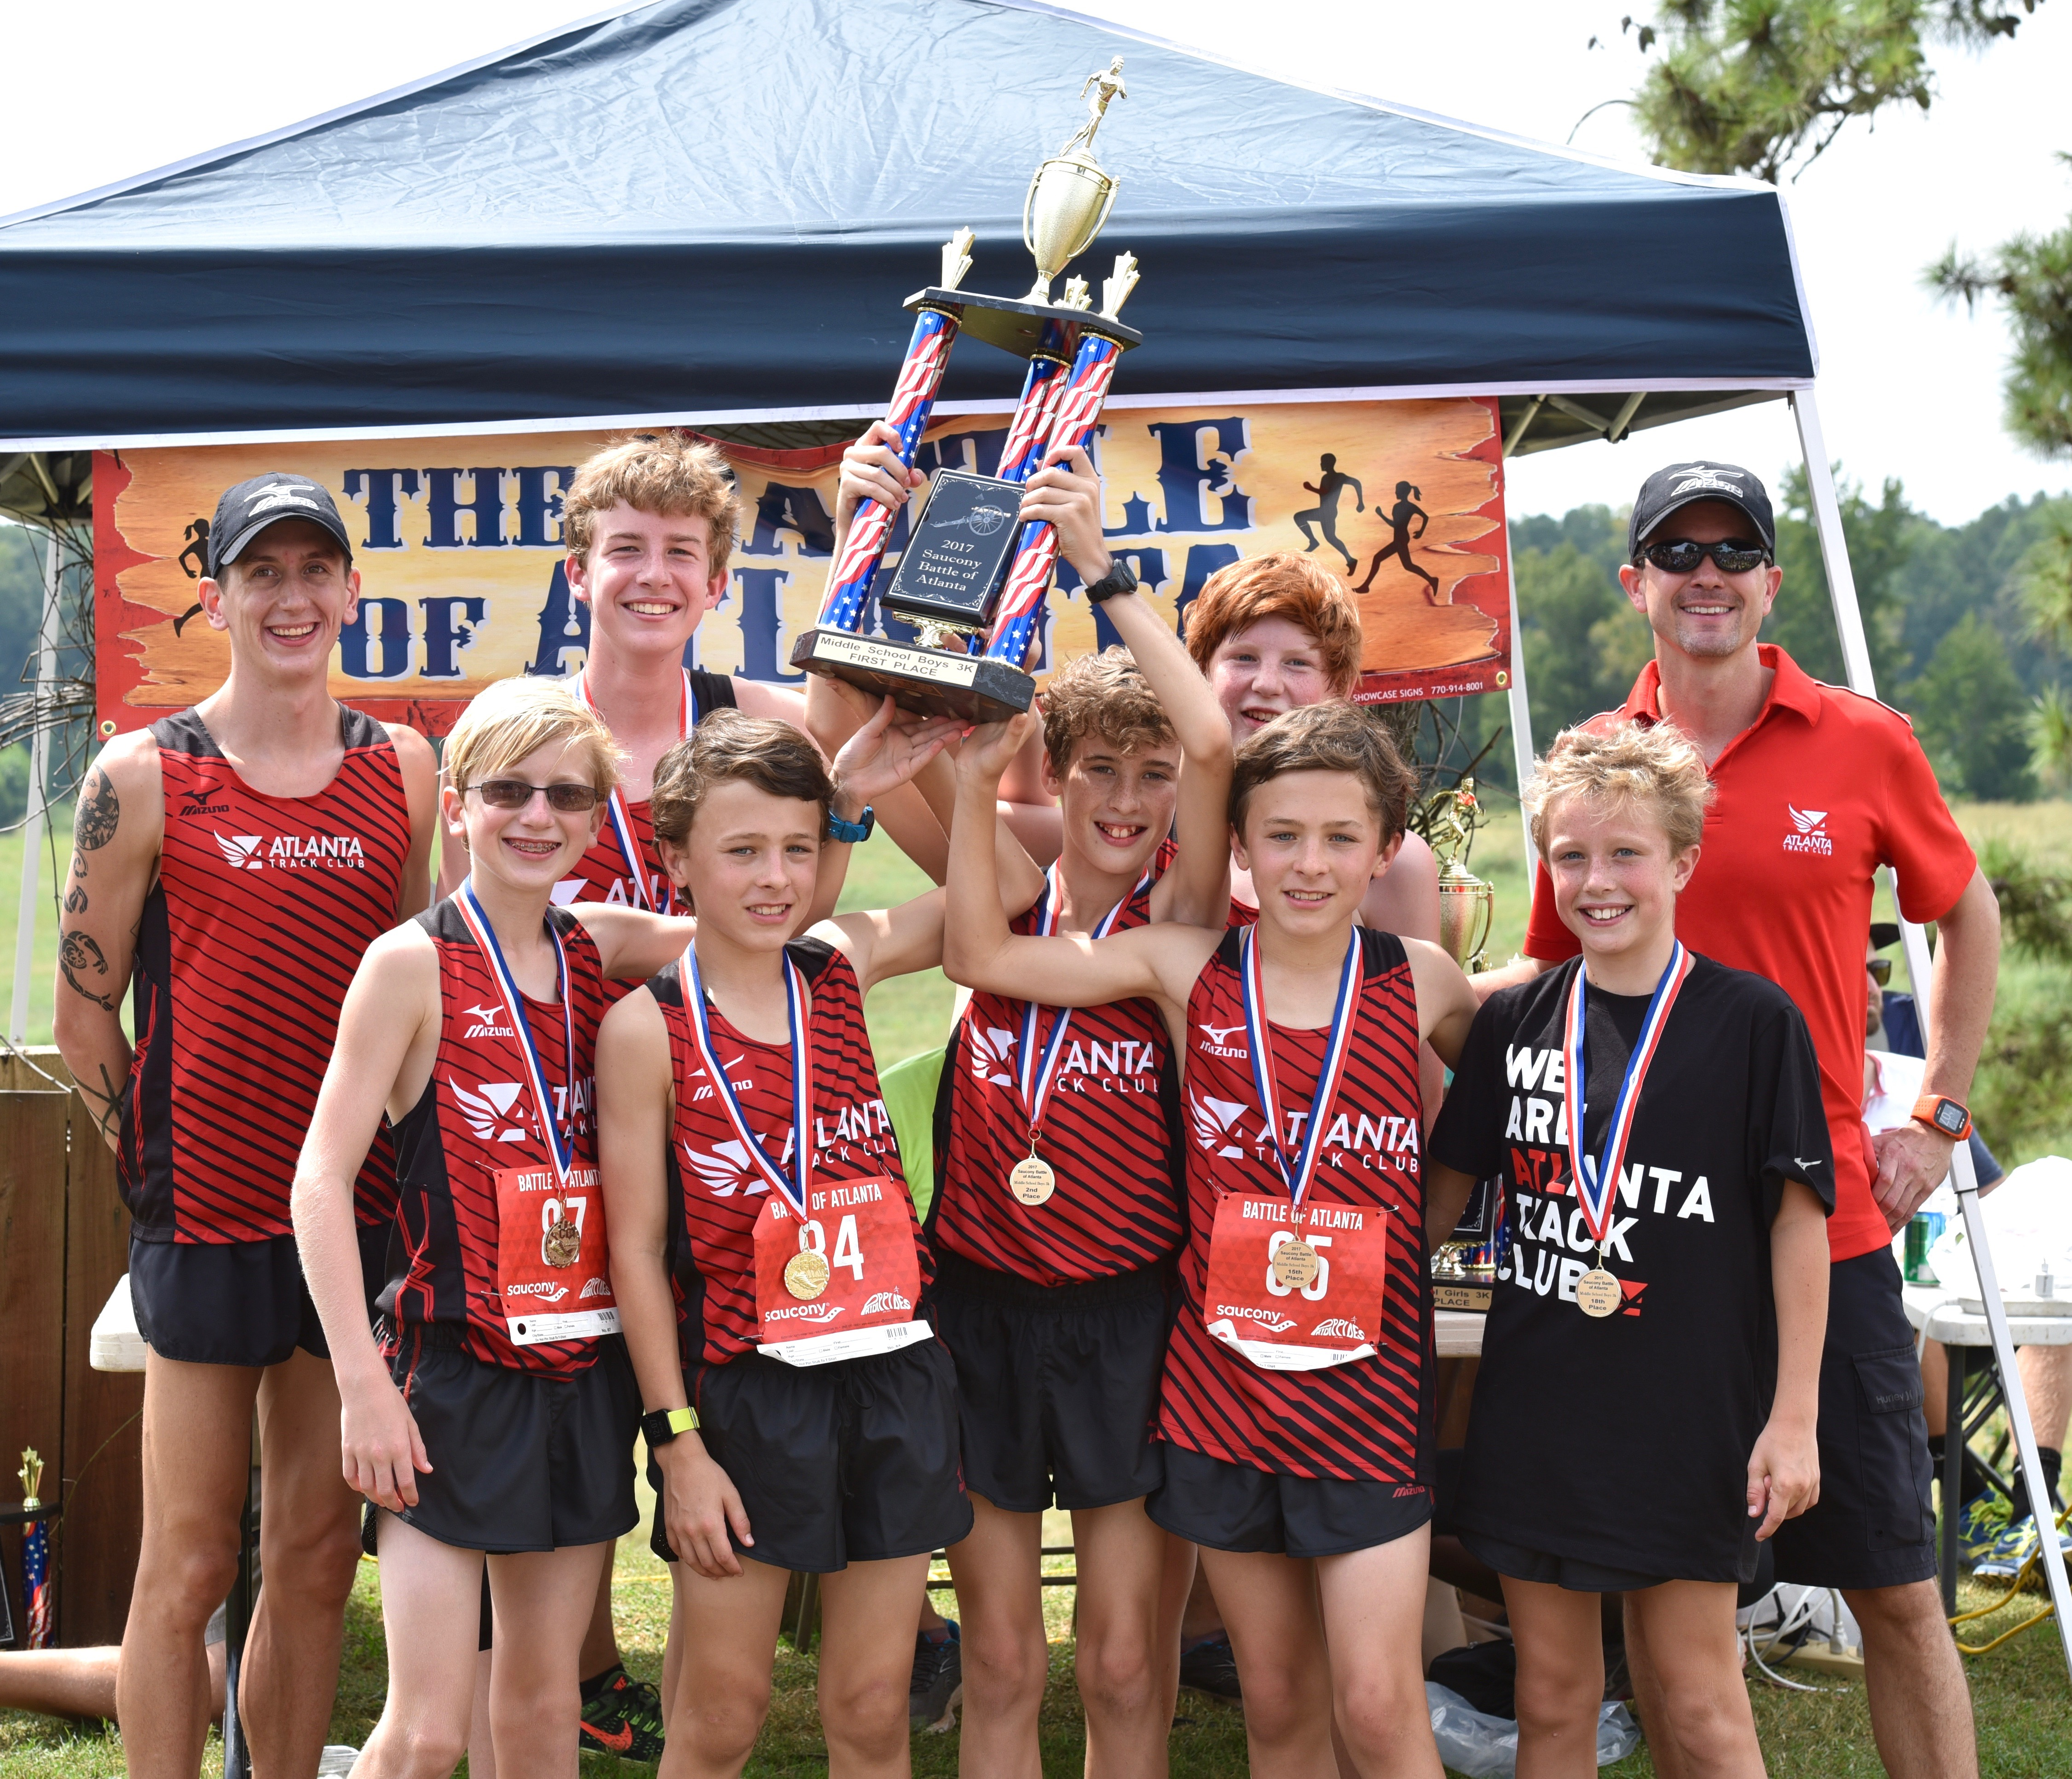 The Boys of Atlanta Track Club's Youth XC Team Win Big at First Meet